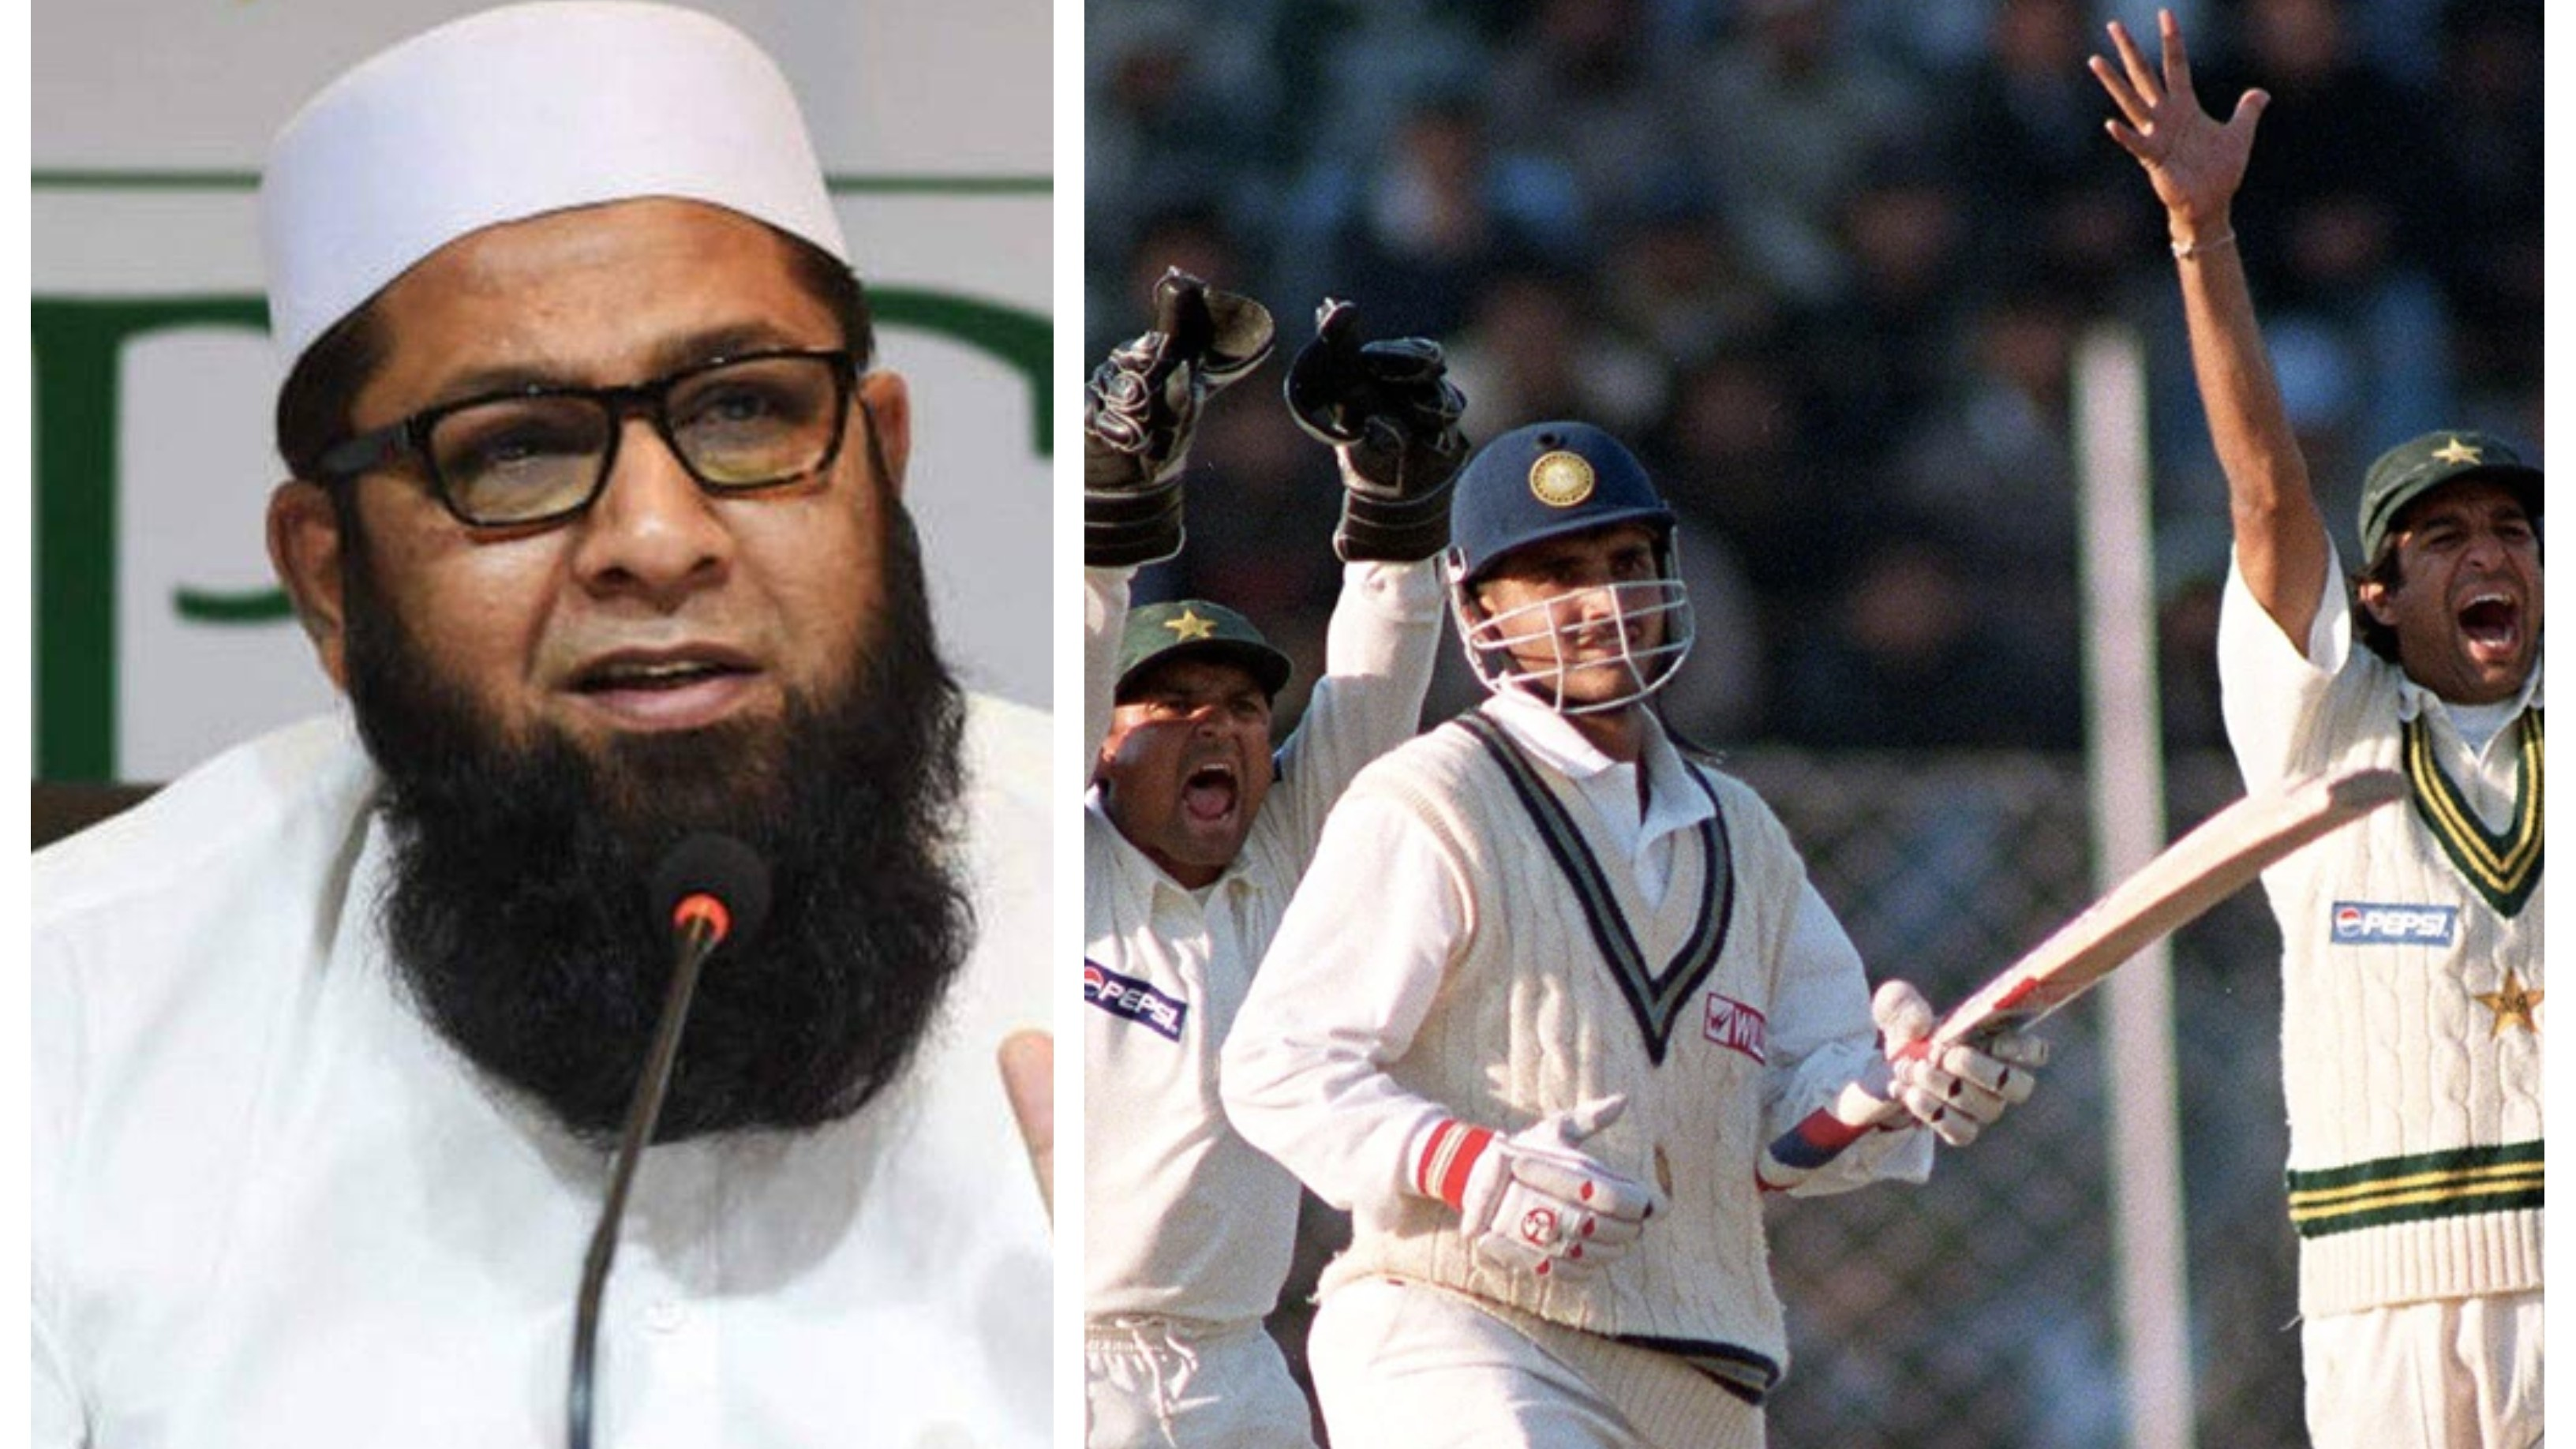 WATCH: Inzamam-ul-Haq admits Sourav Ganguly's dismissal in 1999 Chennai Test was doubtful